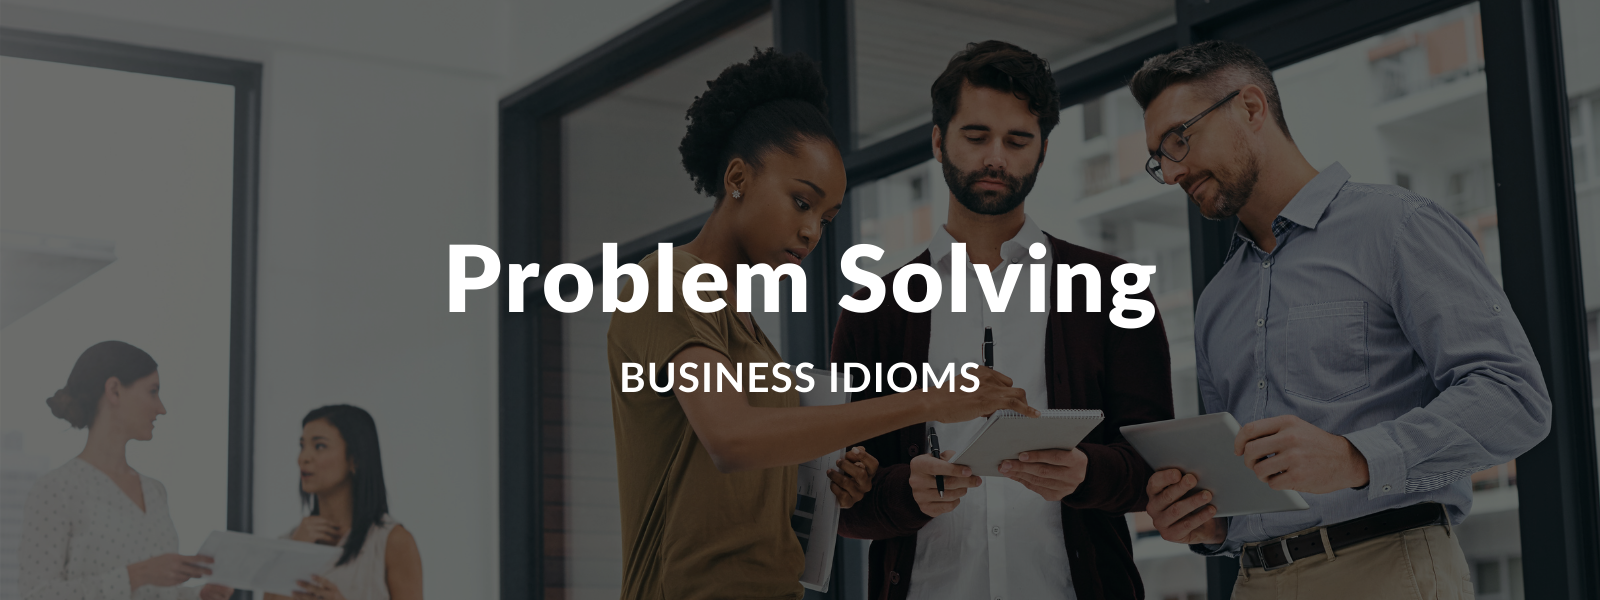 Idioms About Problem Solving | Talaera Blog Business English Learning